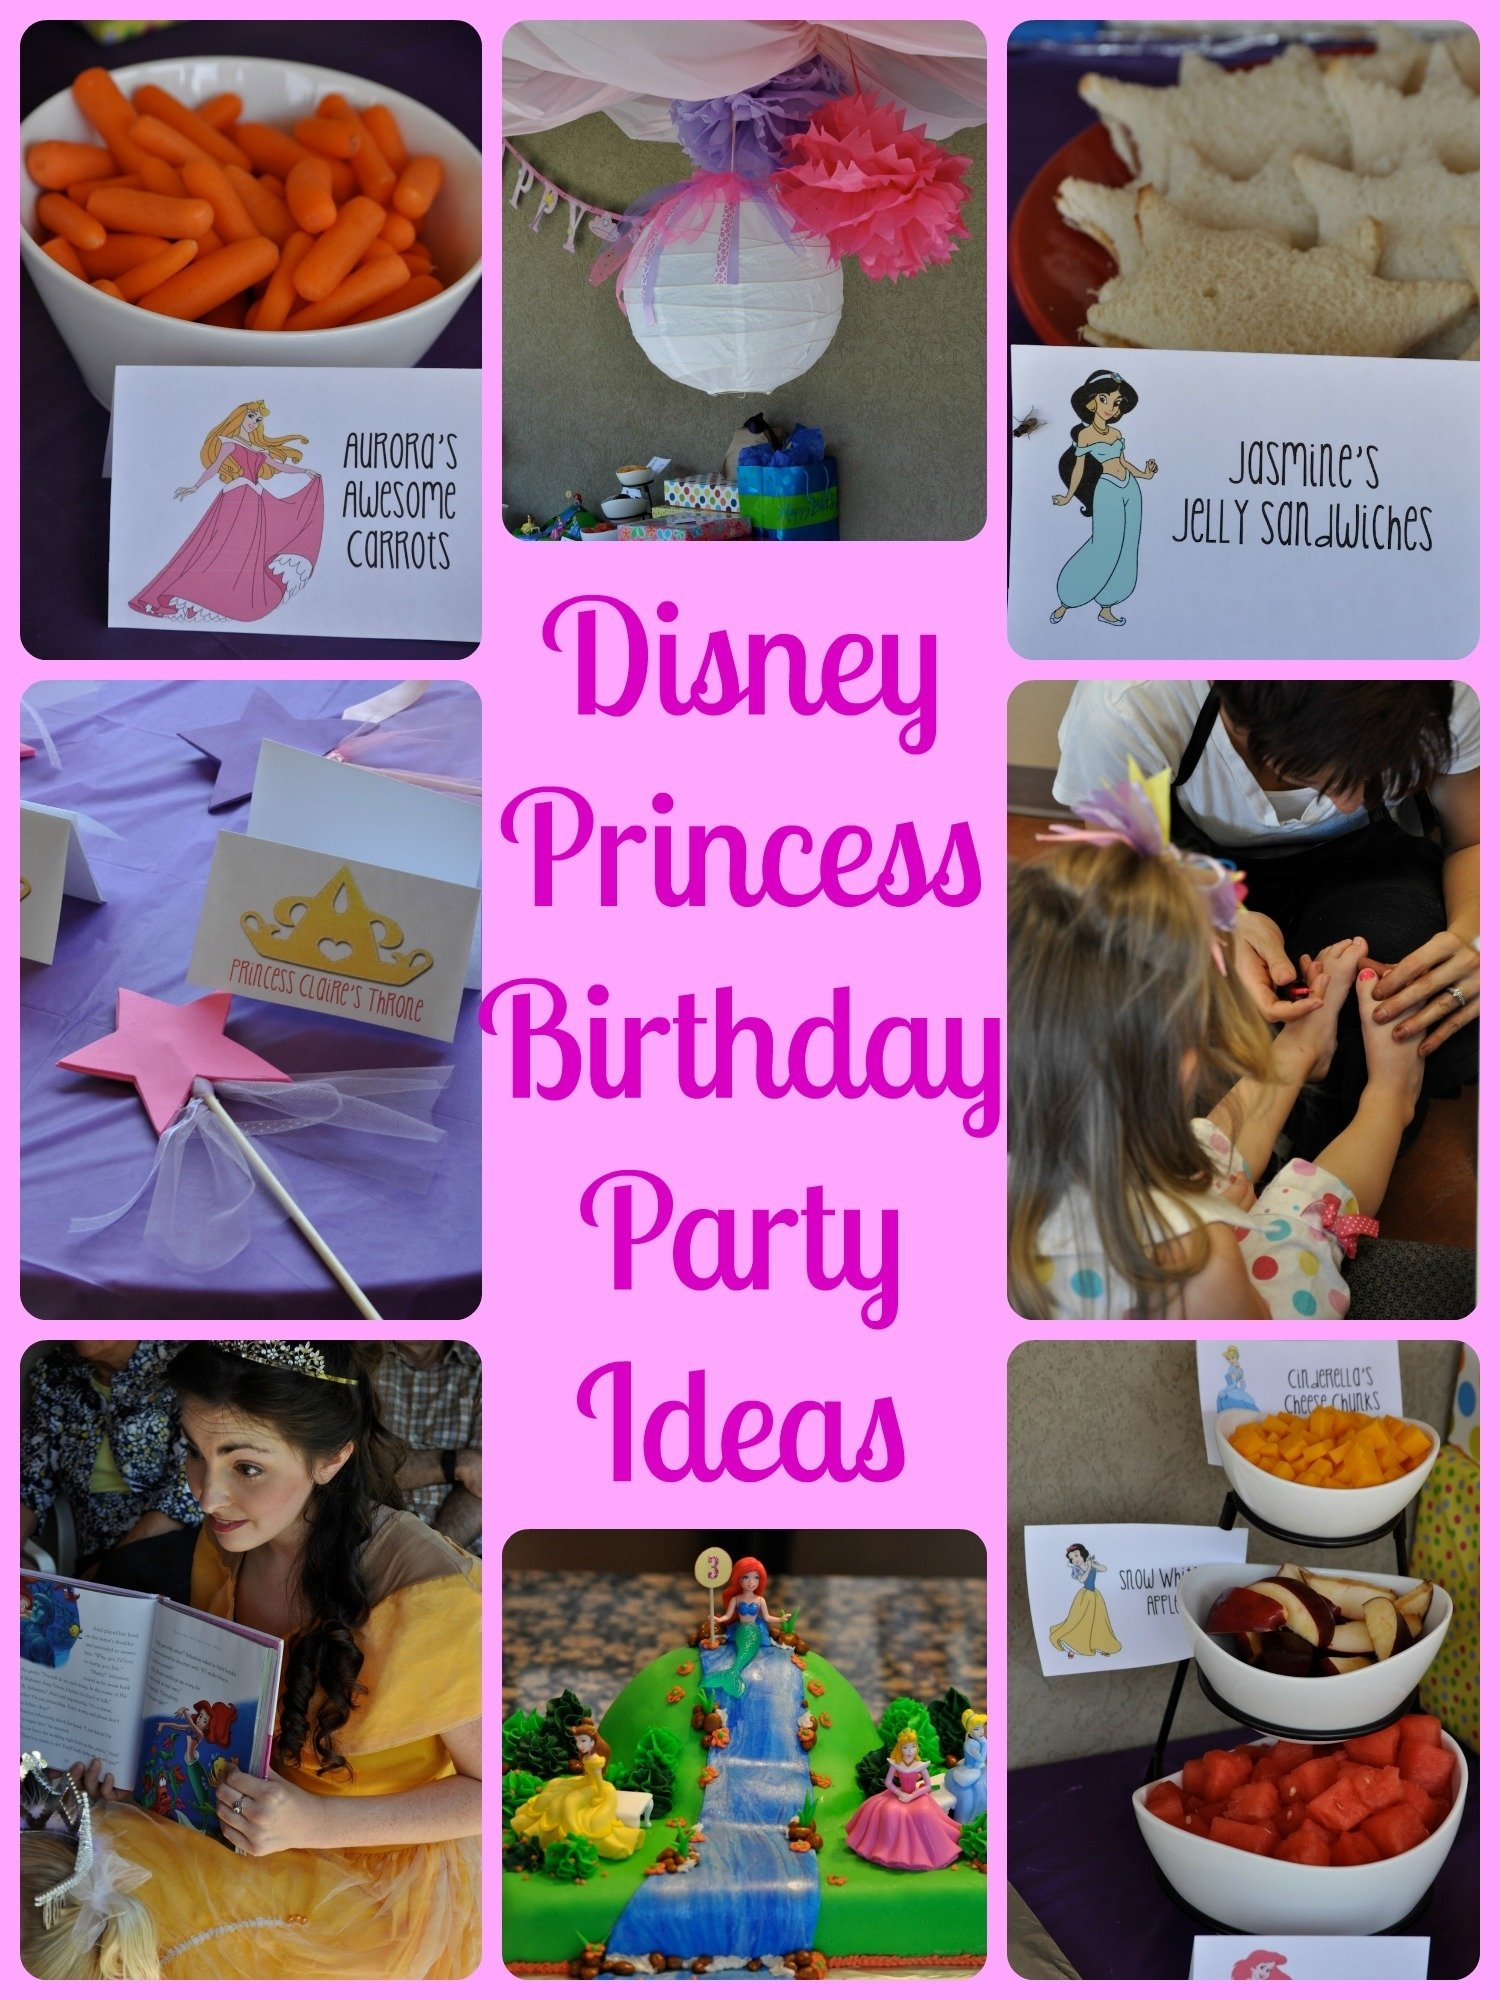 10 Beautiful Disney Princess Birthday Party Ideas disney princess birthday party events to celebrate 1 2020